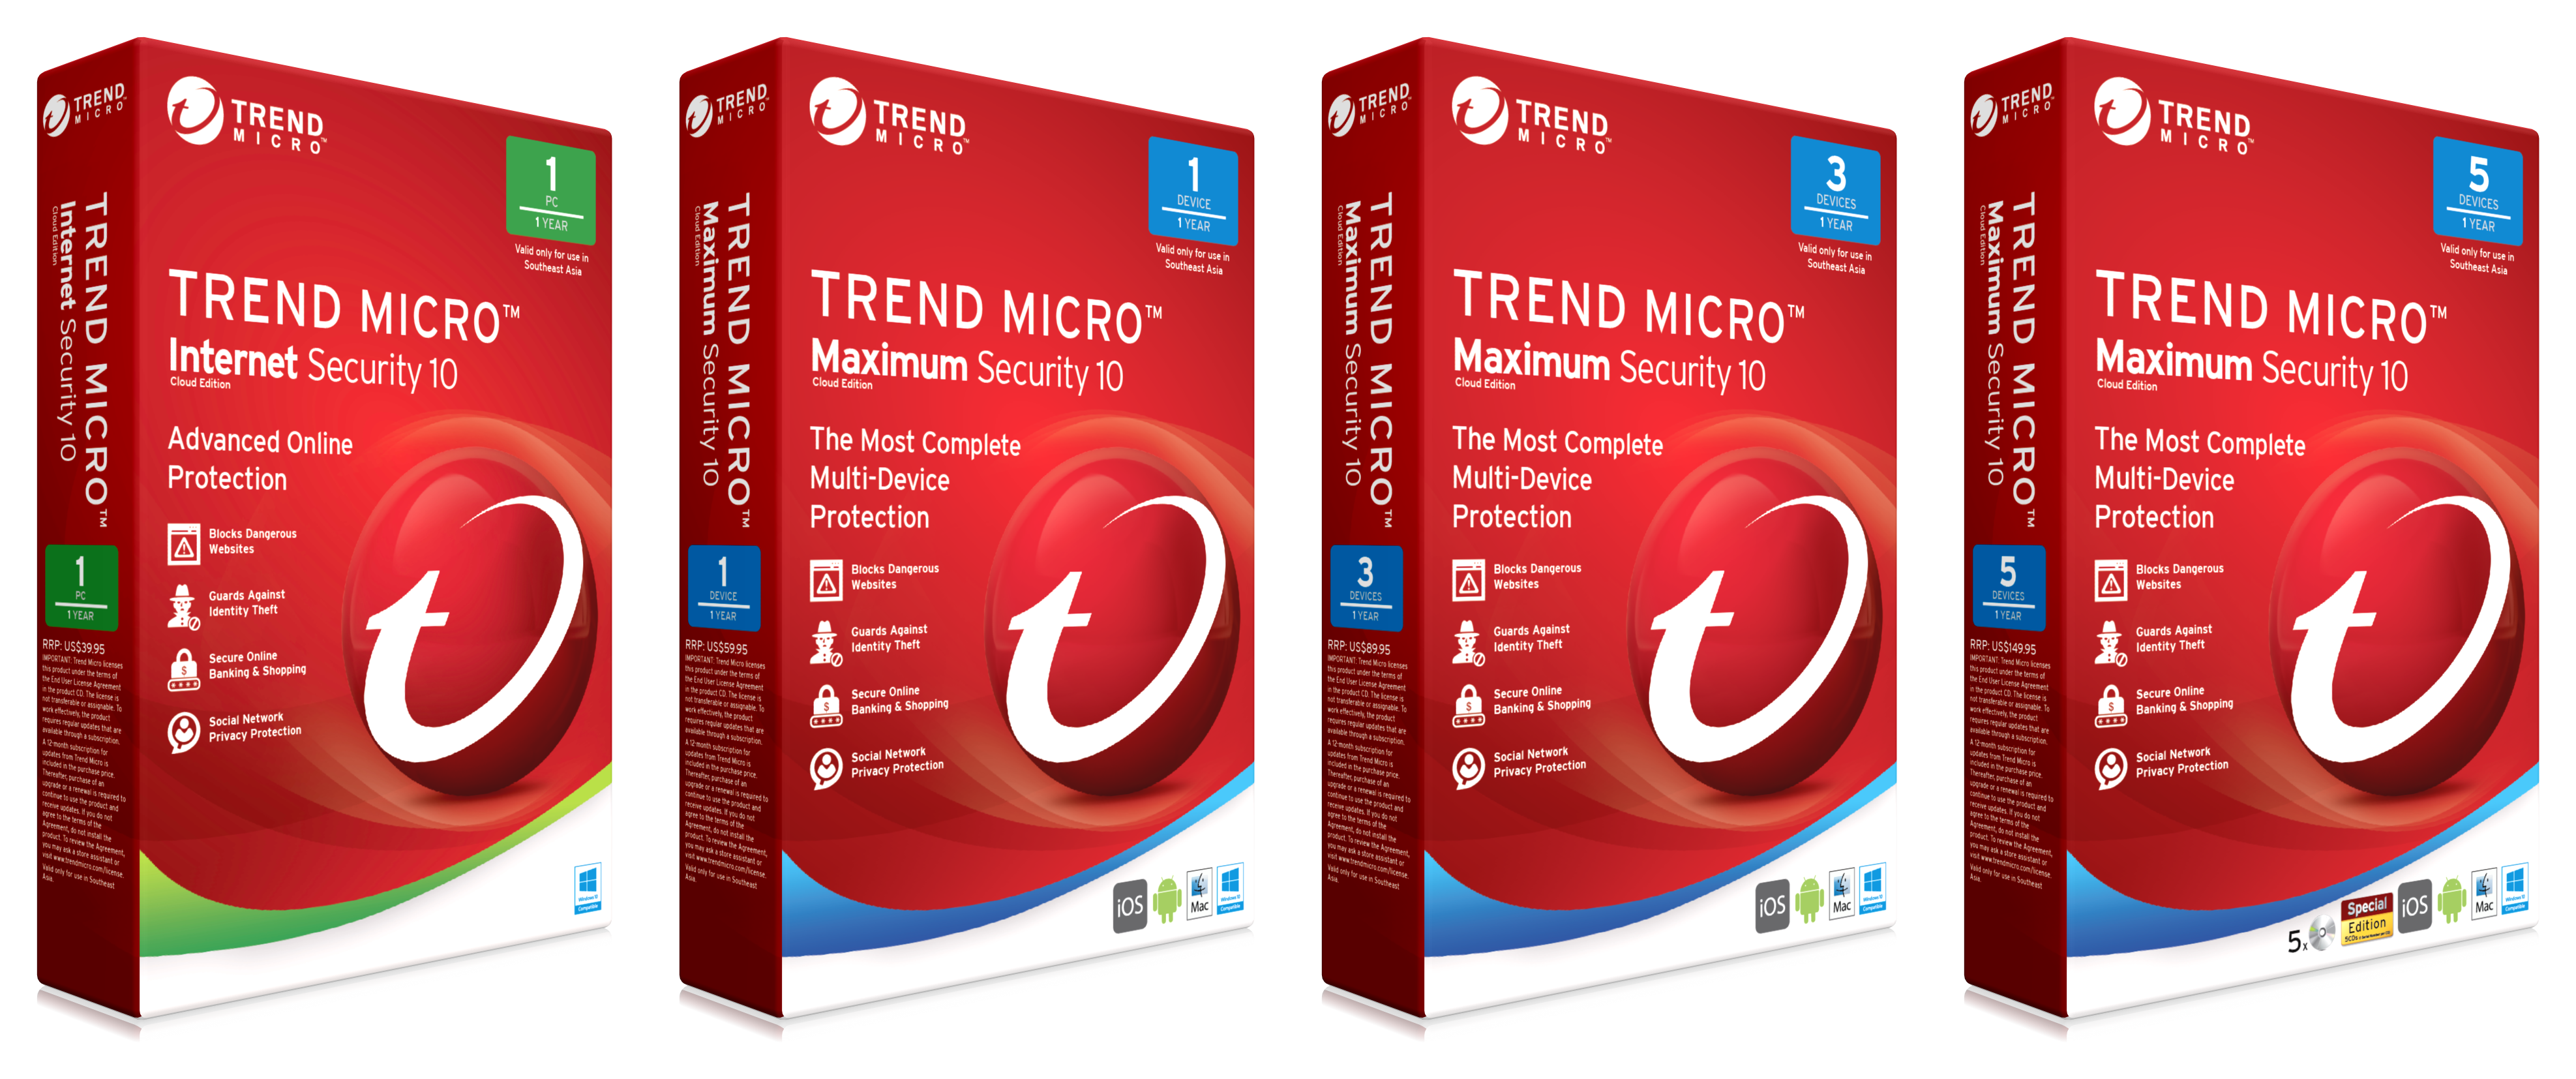 How to Install Trend Micro Premium Security on Windows